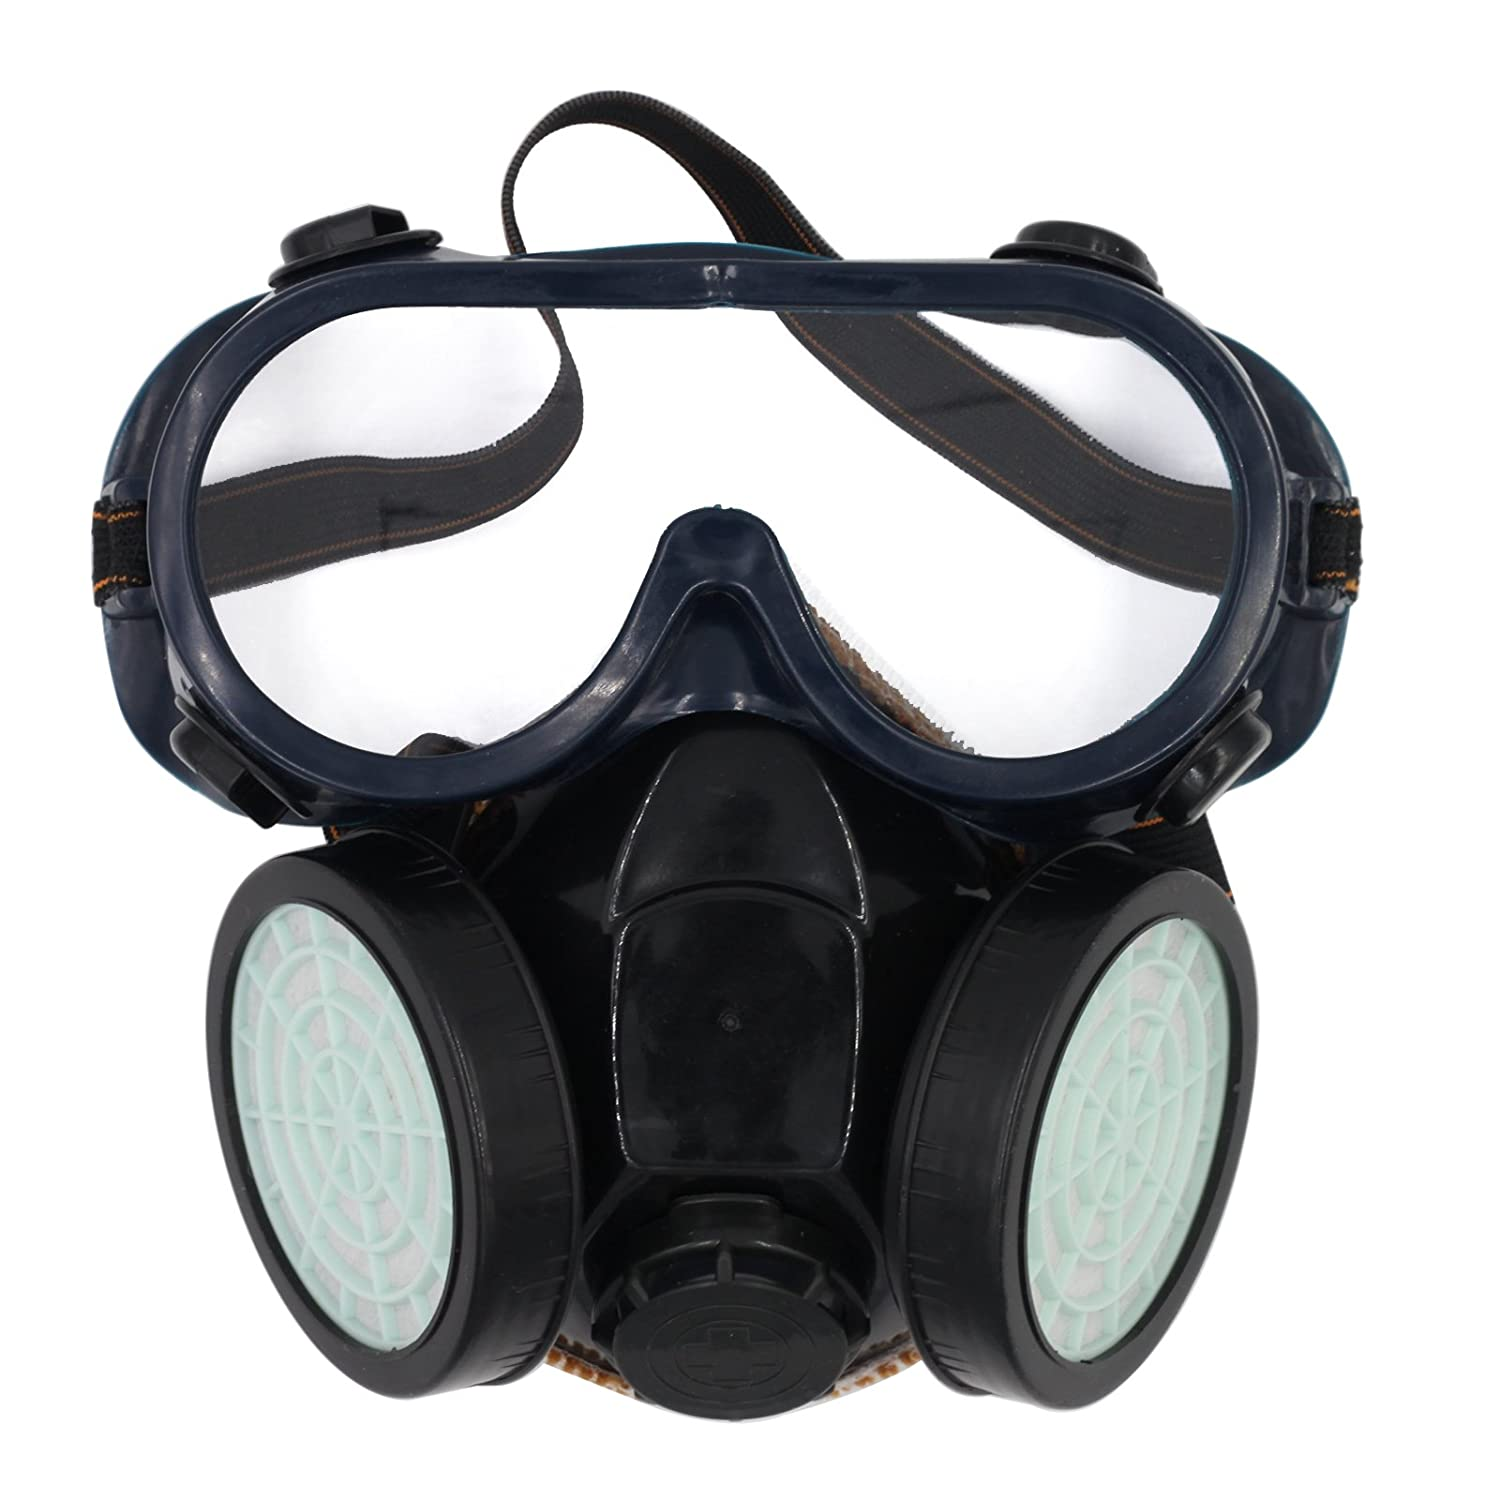 Olusar Anti-Dust Mask Respirator 2 Filter With Safety Goggles Shutong